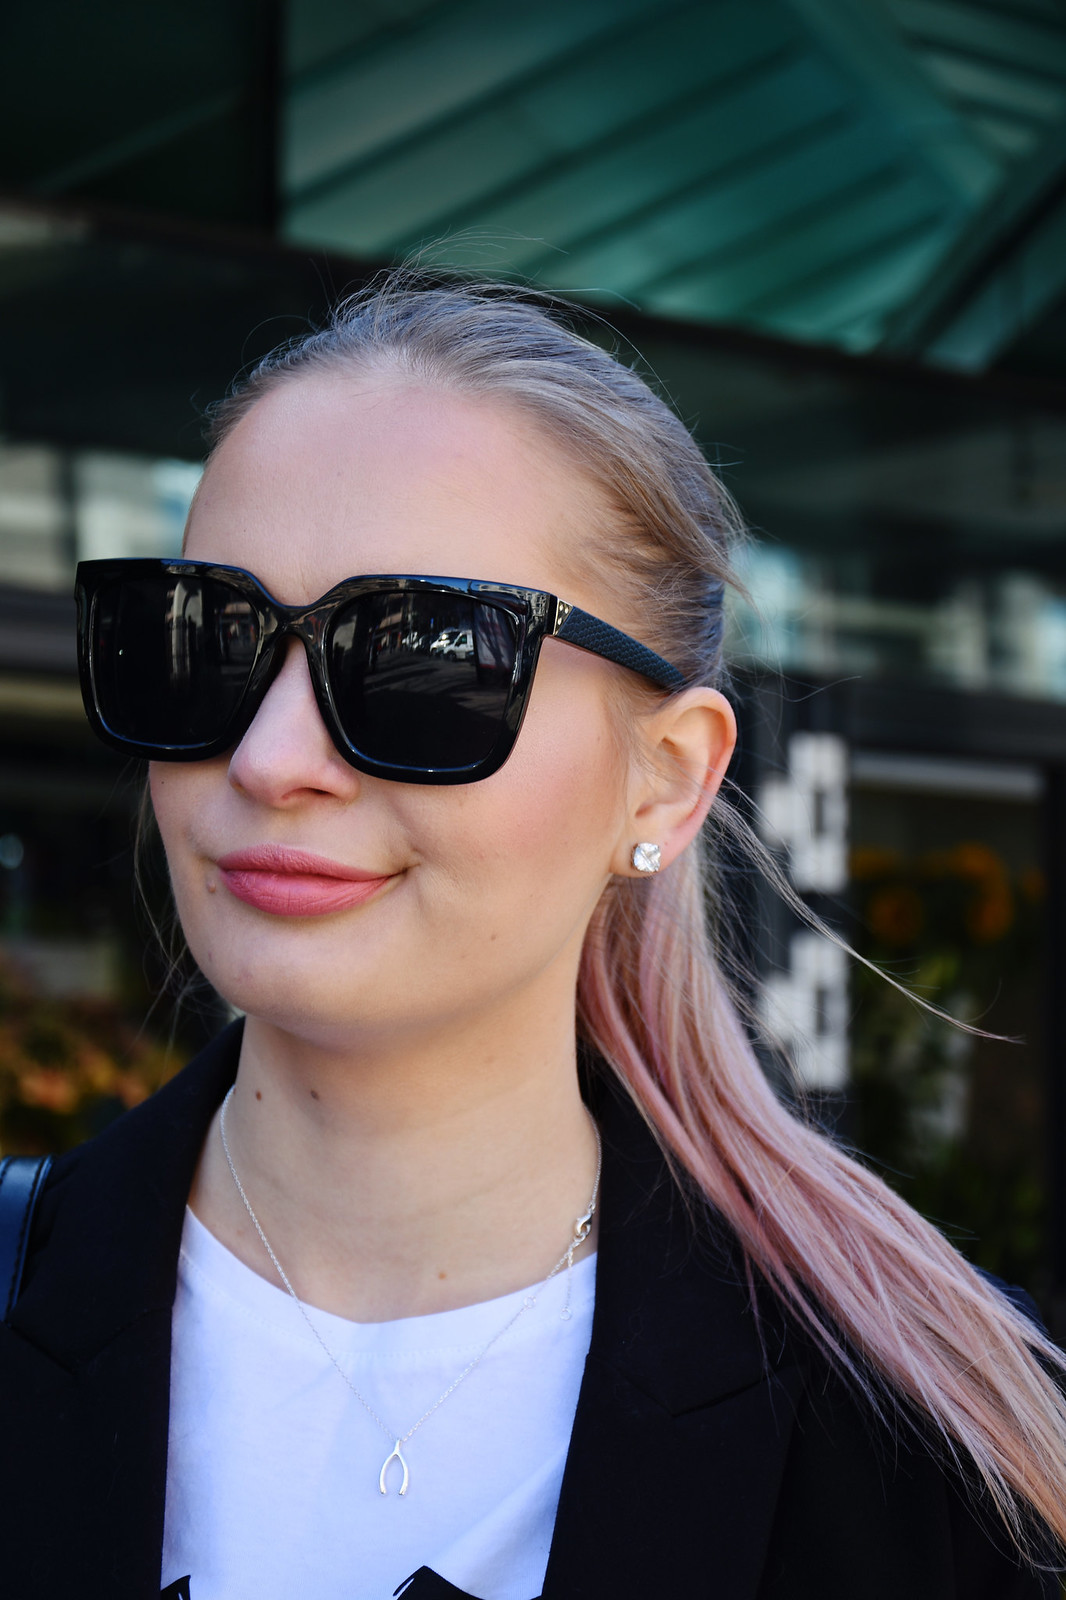 Celine style sunglasses for less